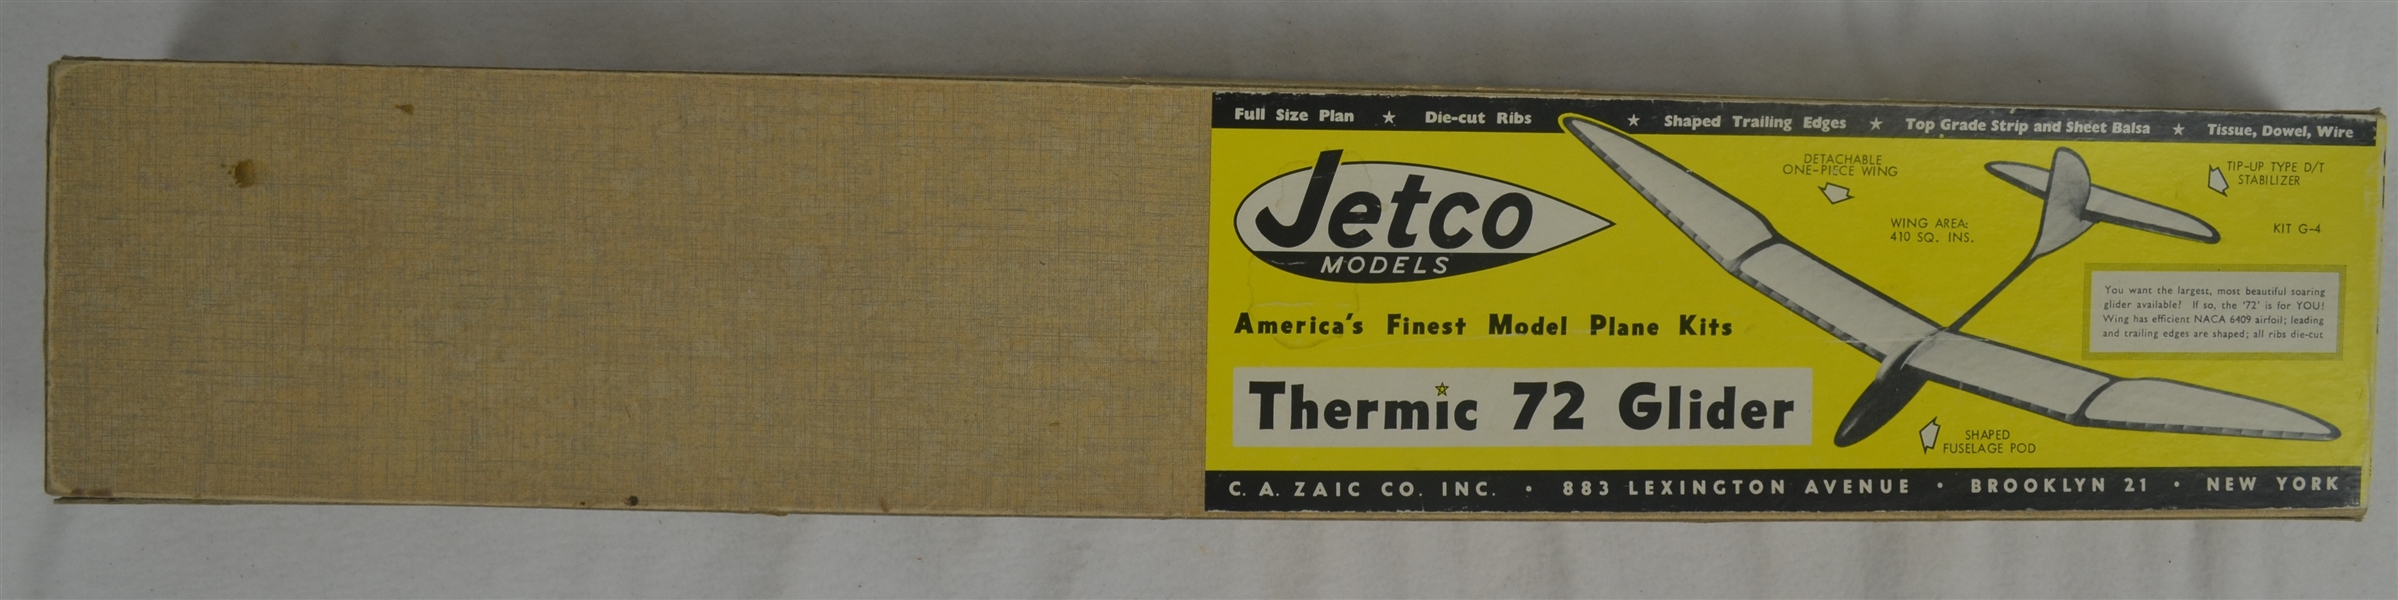 Vintage Jetco Thermic 72 1970's Airplane